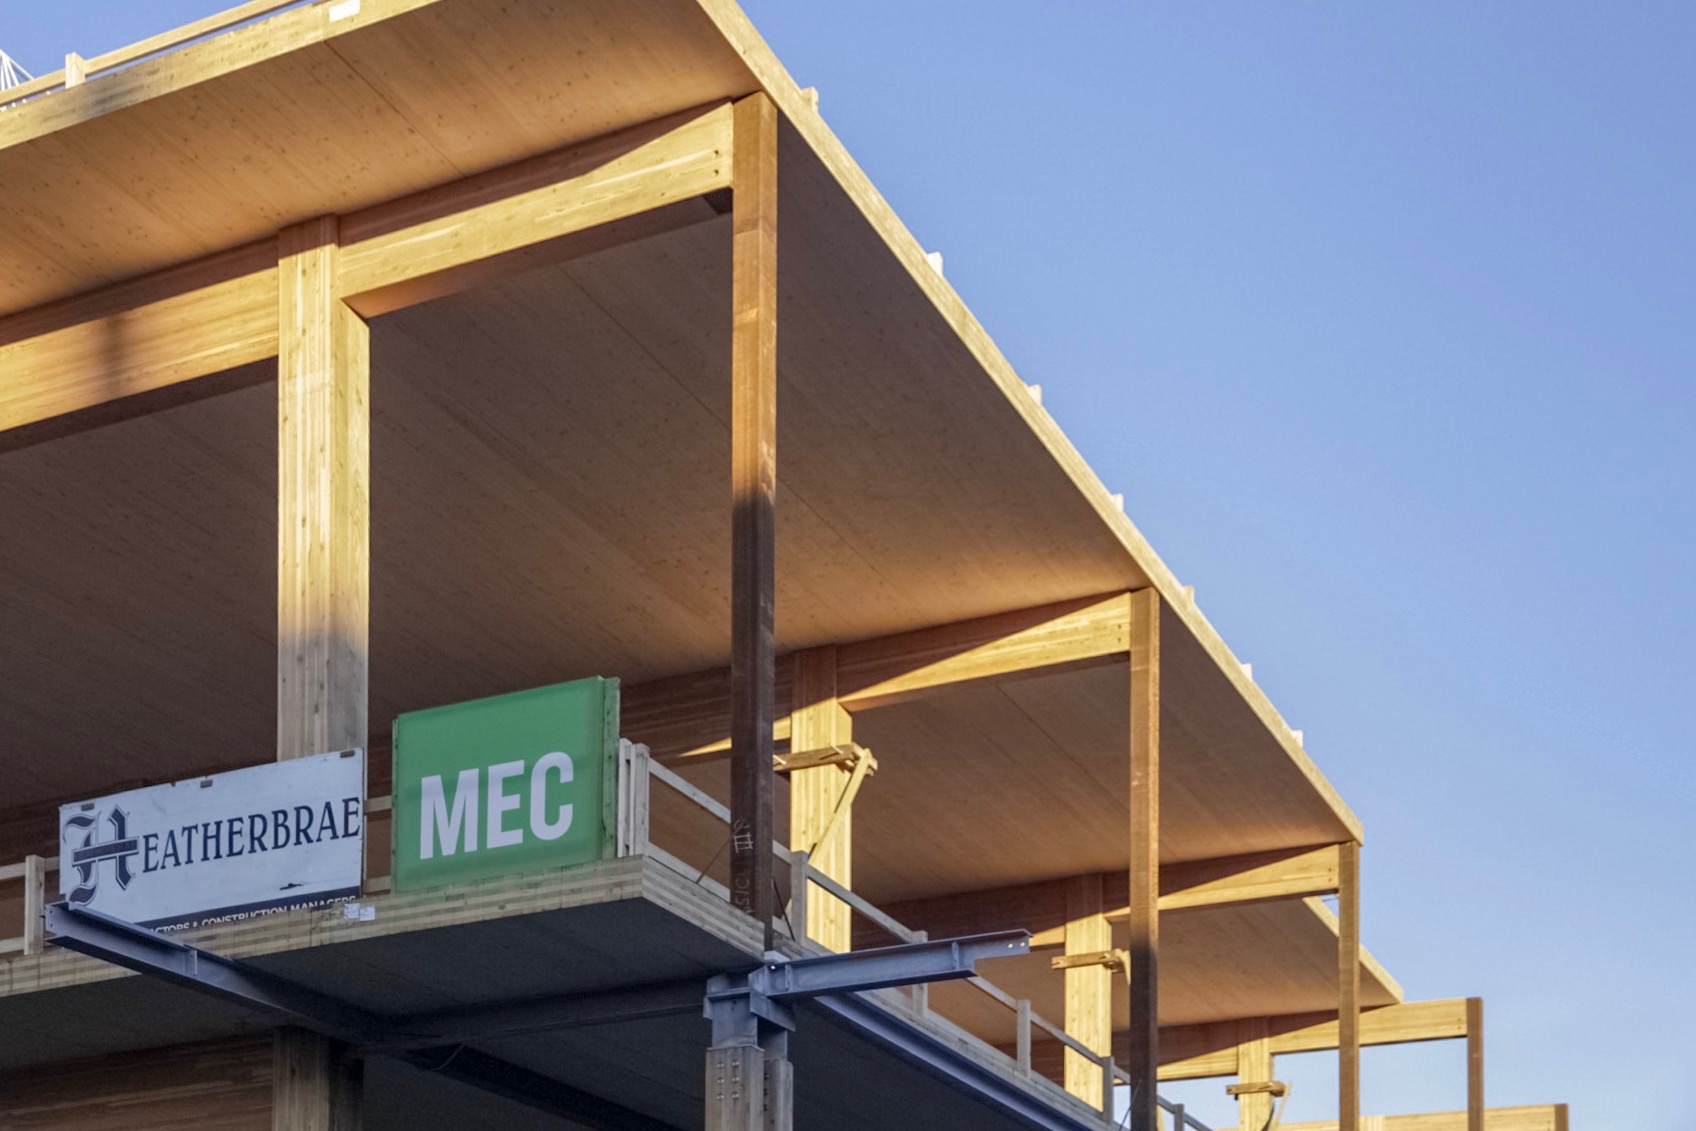 The new Vancouver MEC Store in progress